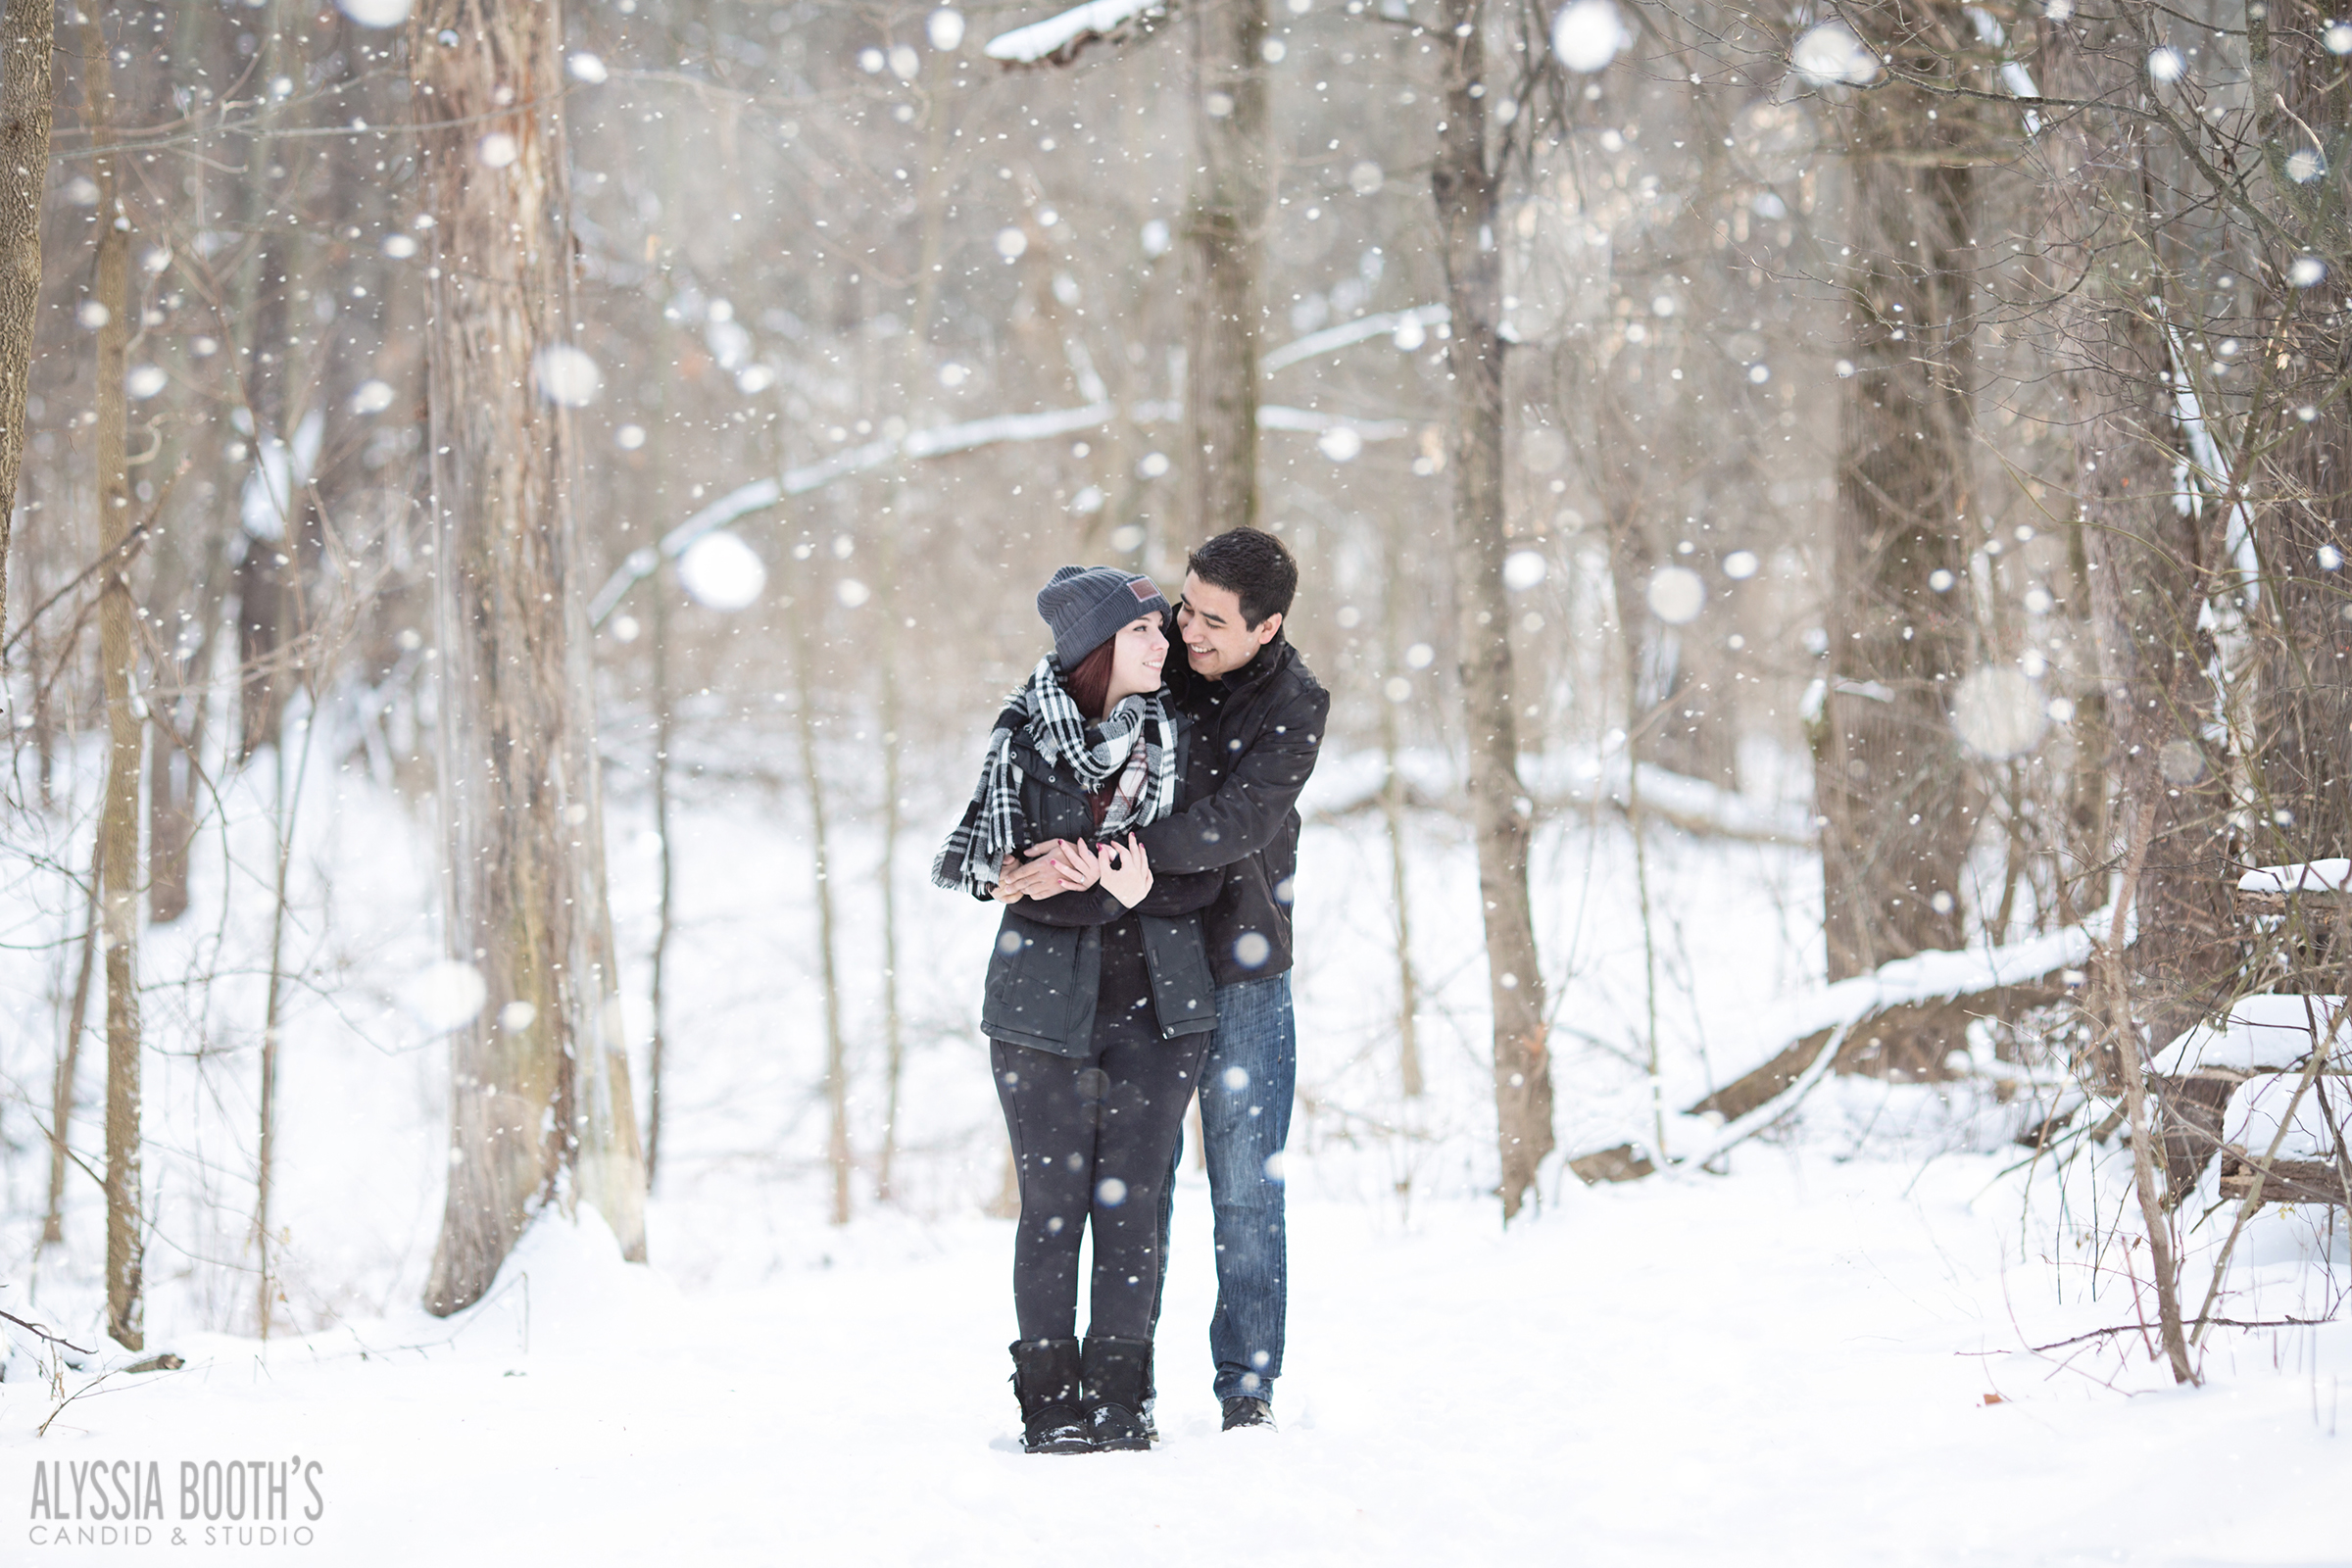 Winter Engagement Photoshoot | Okemos Michigan | Alyssia Booth's Candid & Studio | www.abcandidstudio.com | Snow photoshoot | engaged